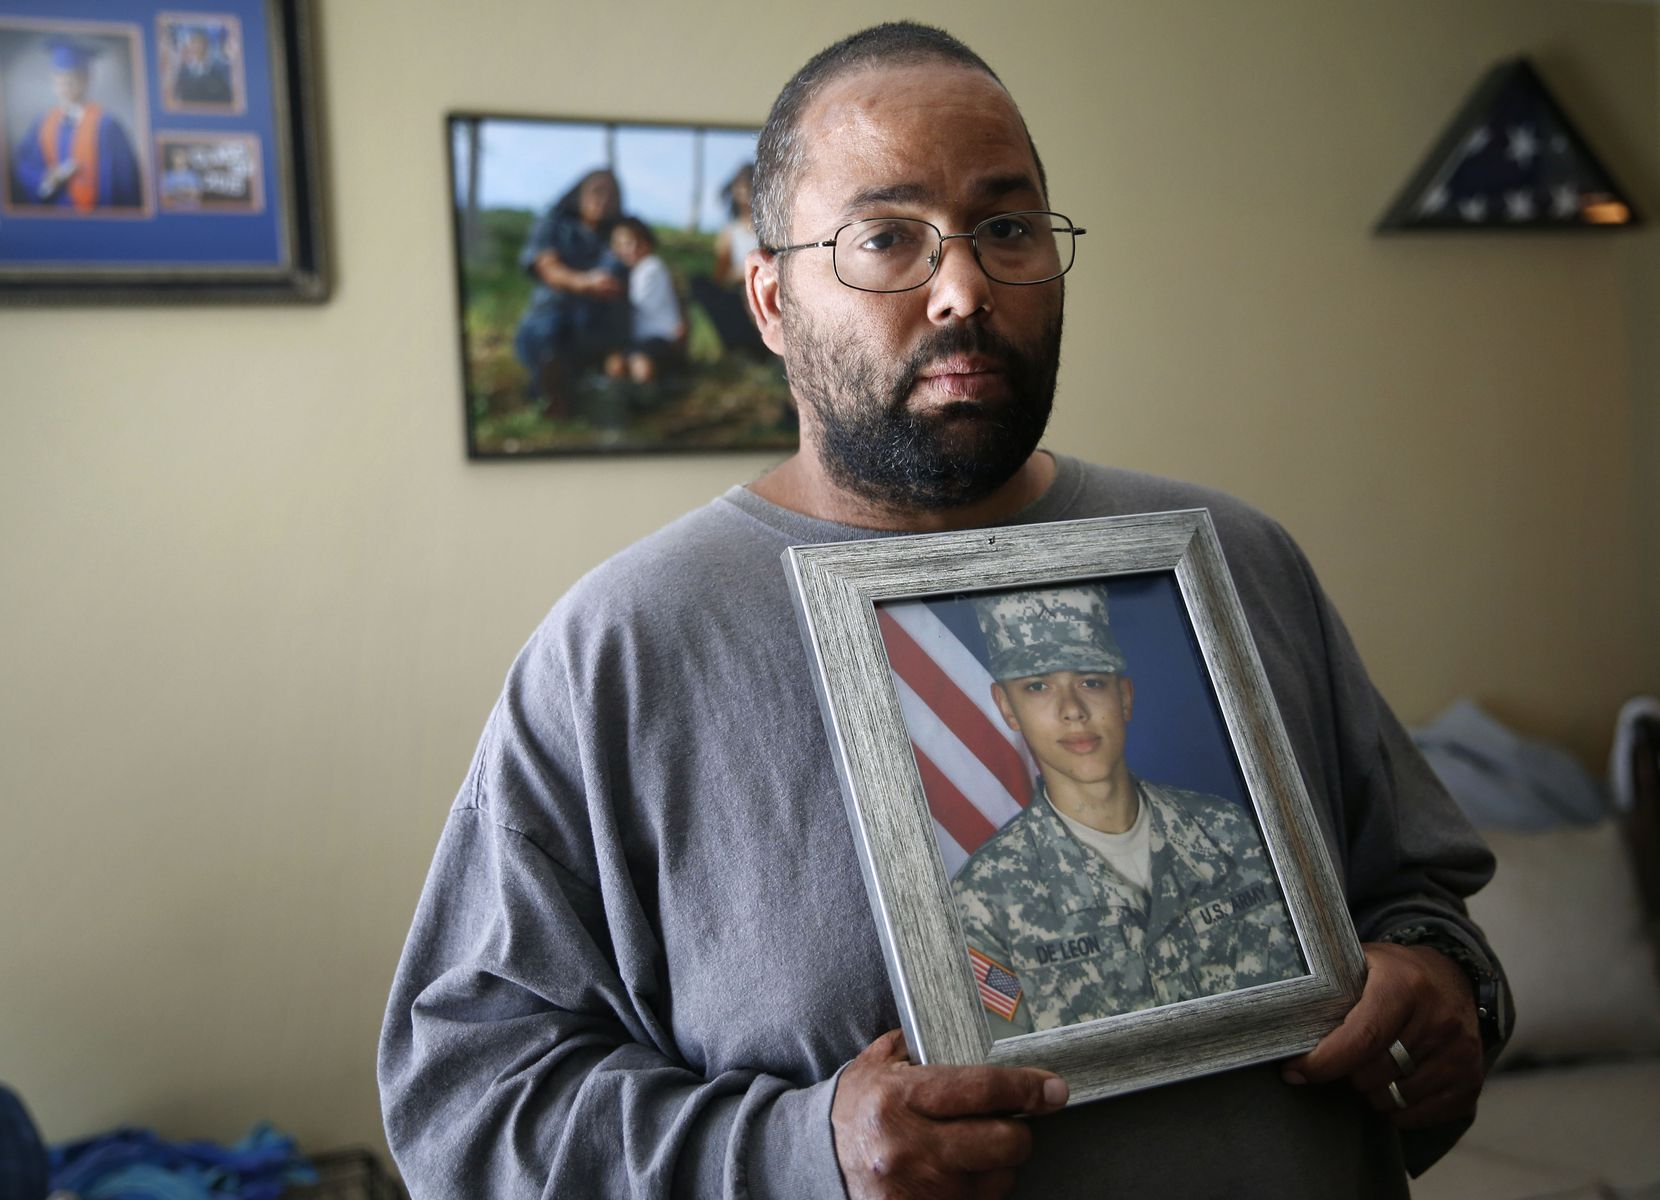 Ricky DeLeon holds a portrait of his late son, Isaac Lee DeLeon, at his home in San Angelo.